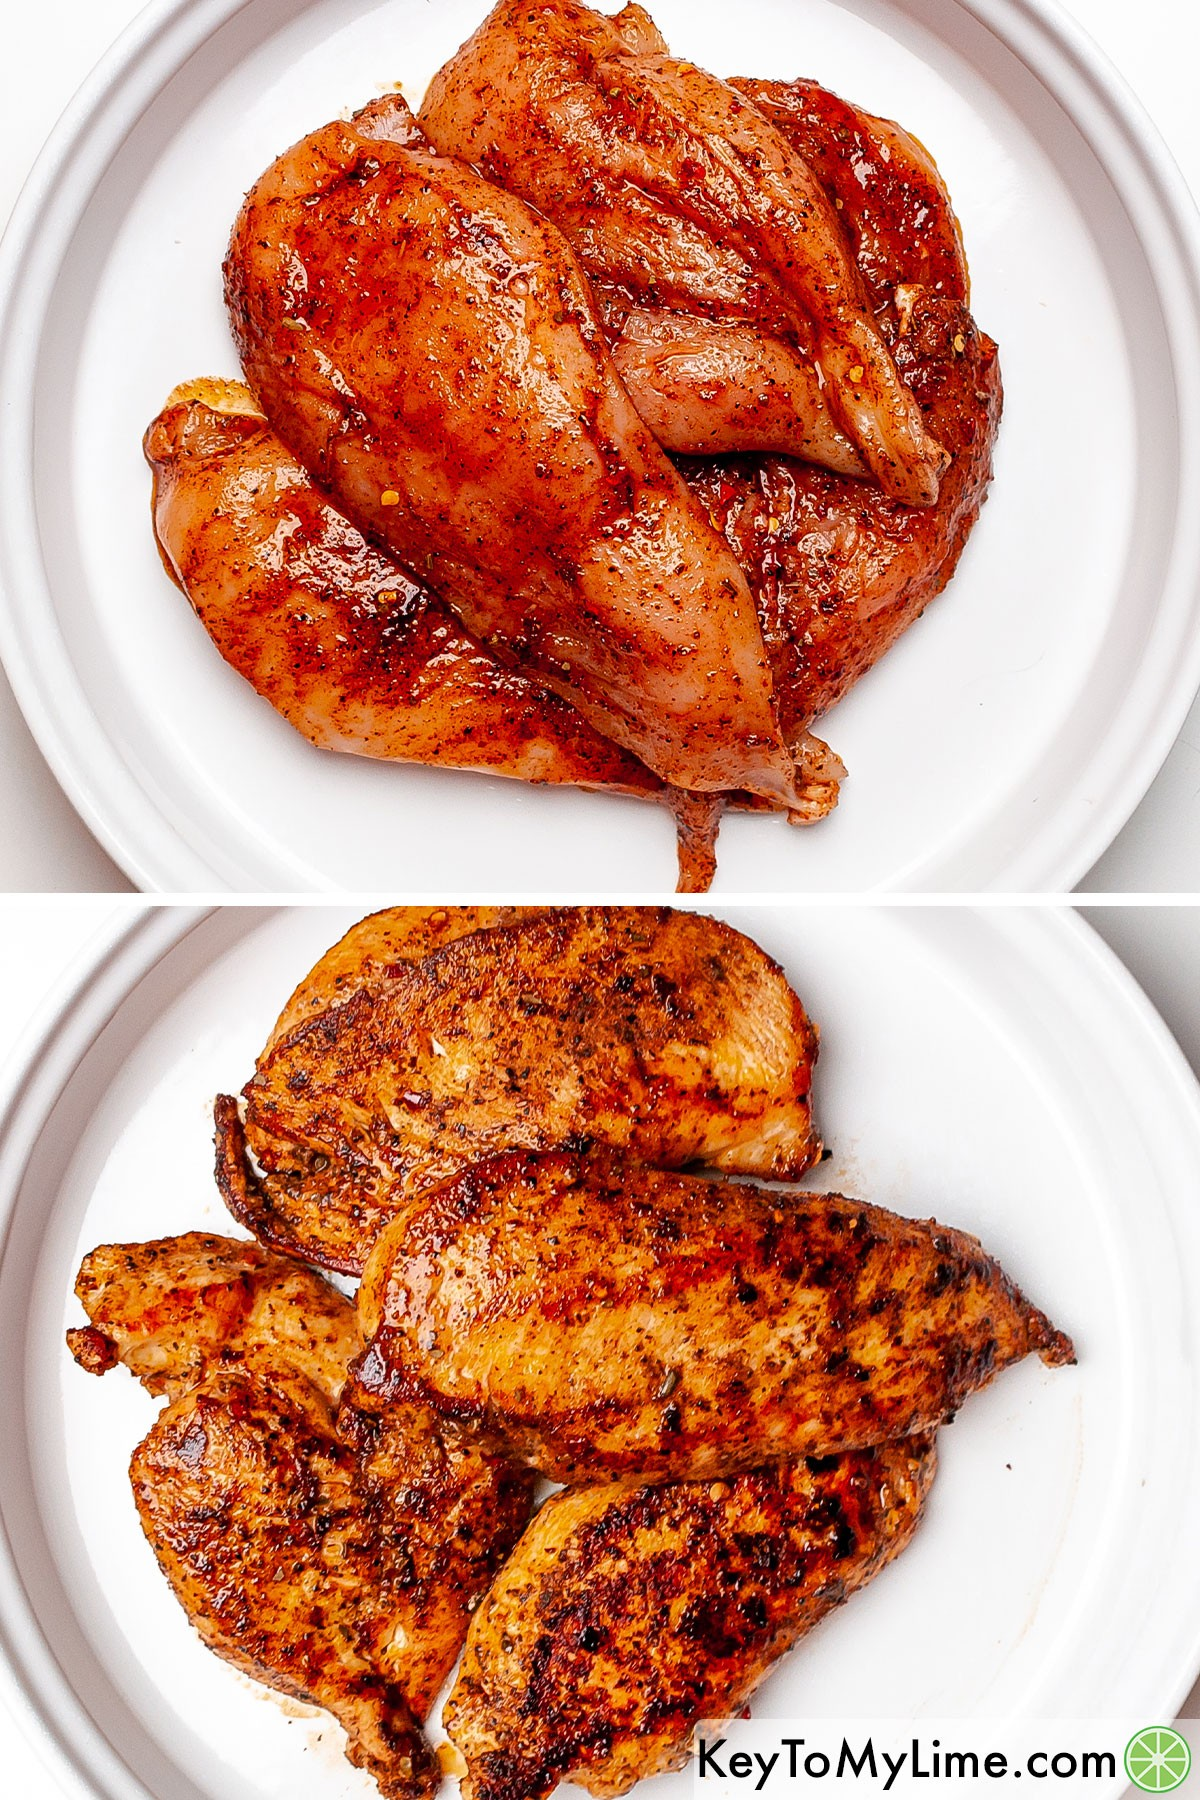 Fajita seasoning coated chicken breast fillets before and after cooking.